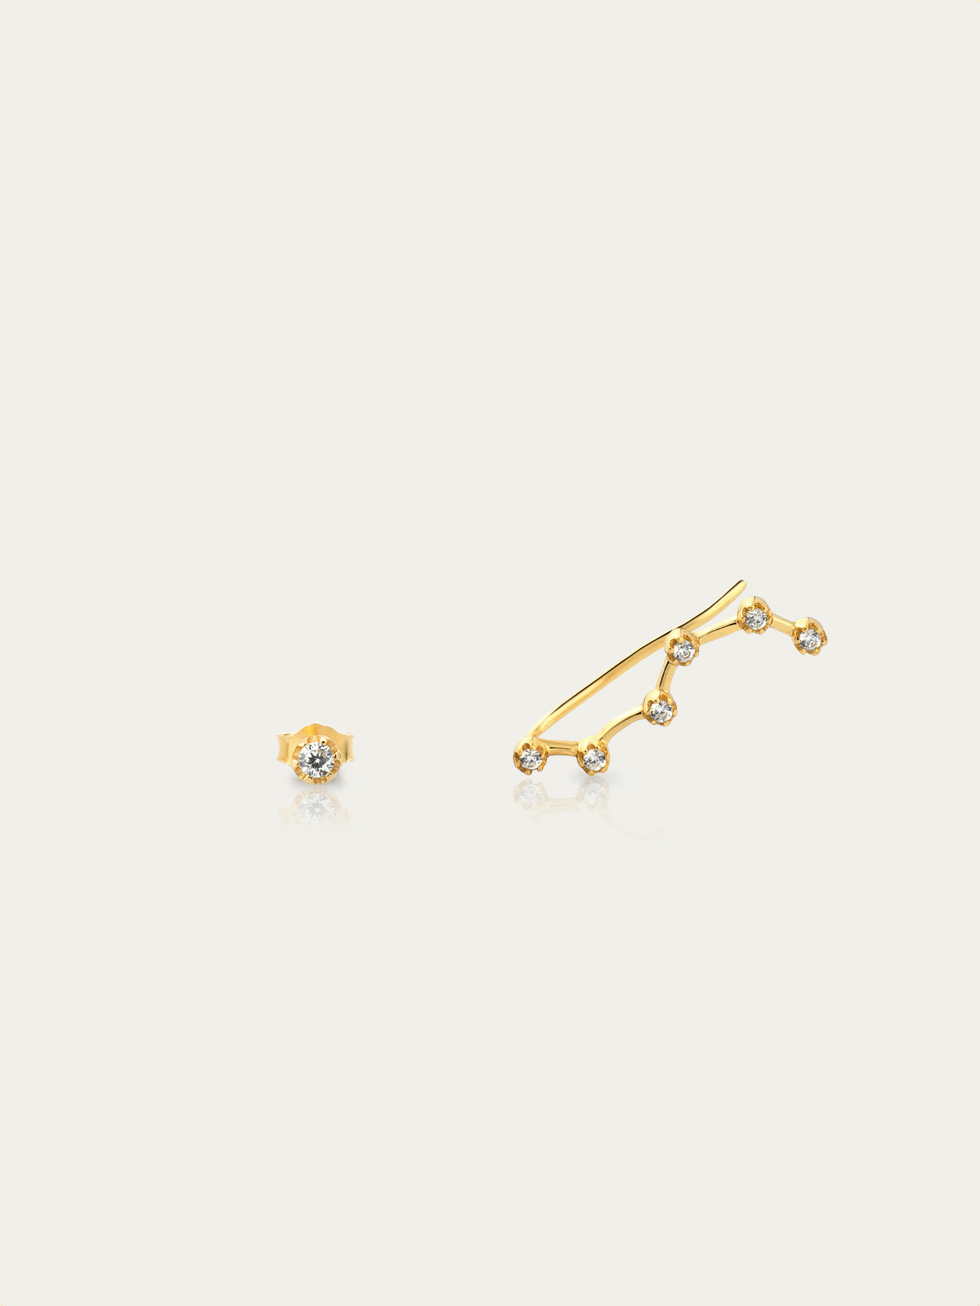 CONSTELATION gold earrings